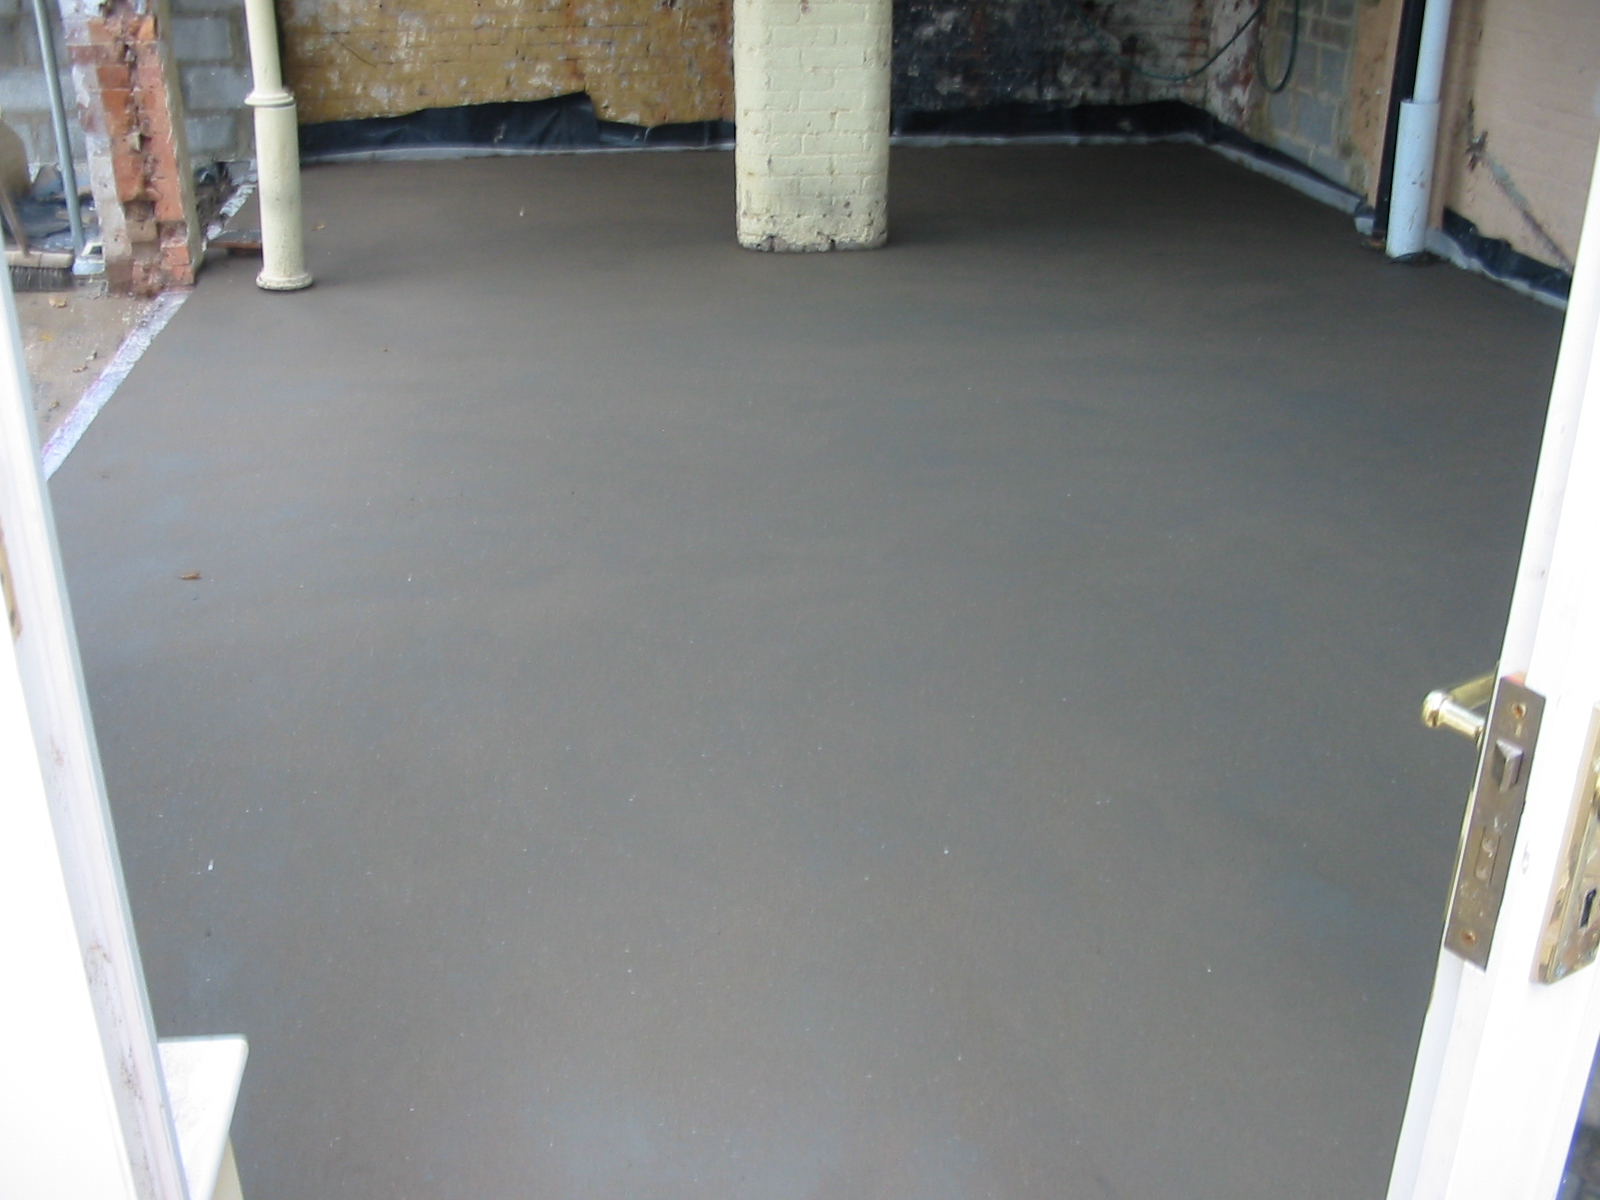 Diy Screed Bathroom Floor : Gerrits vloeren hardenberg zandcement egaliseren